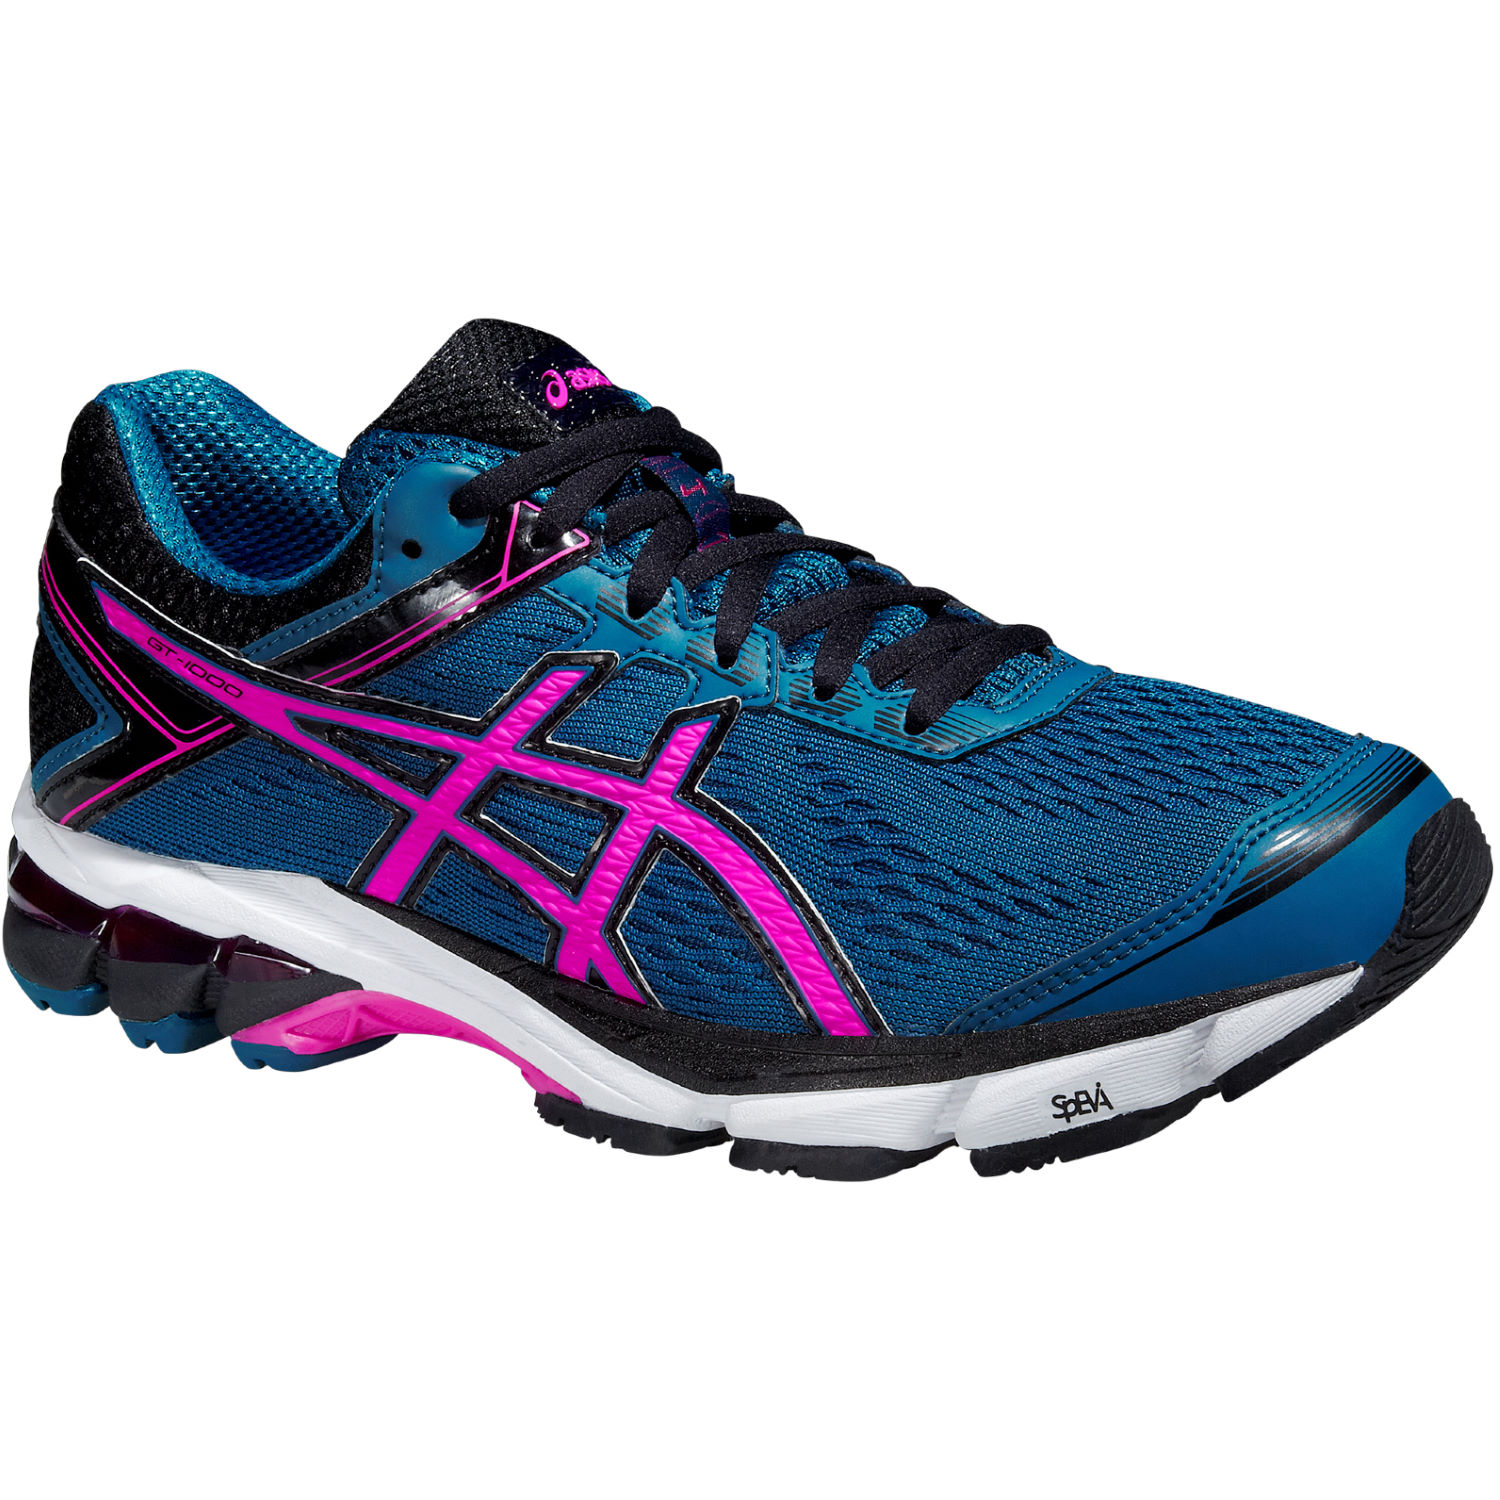 wiggle asics women 39 s gt 1000 4 shoes aw15 stability running shoes. Black Bedroom Furniture Sets. Home Design Ideas